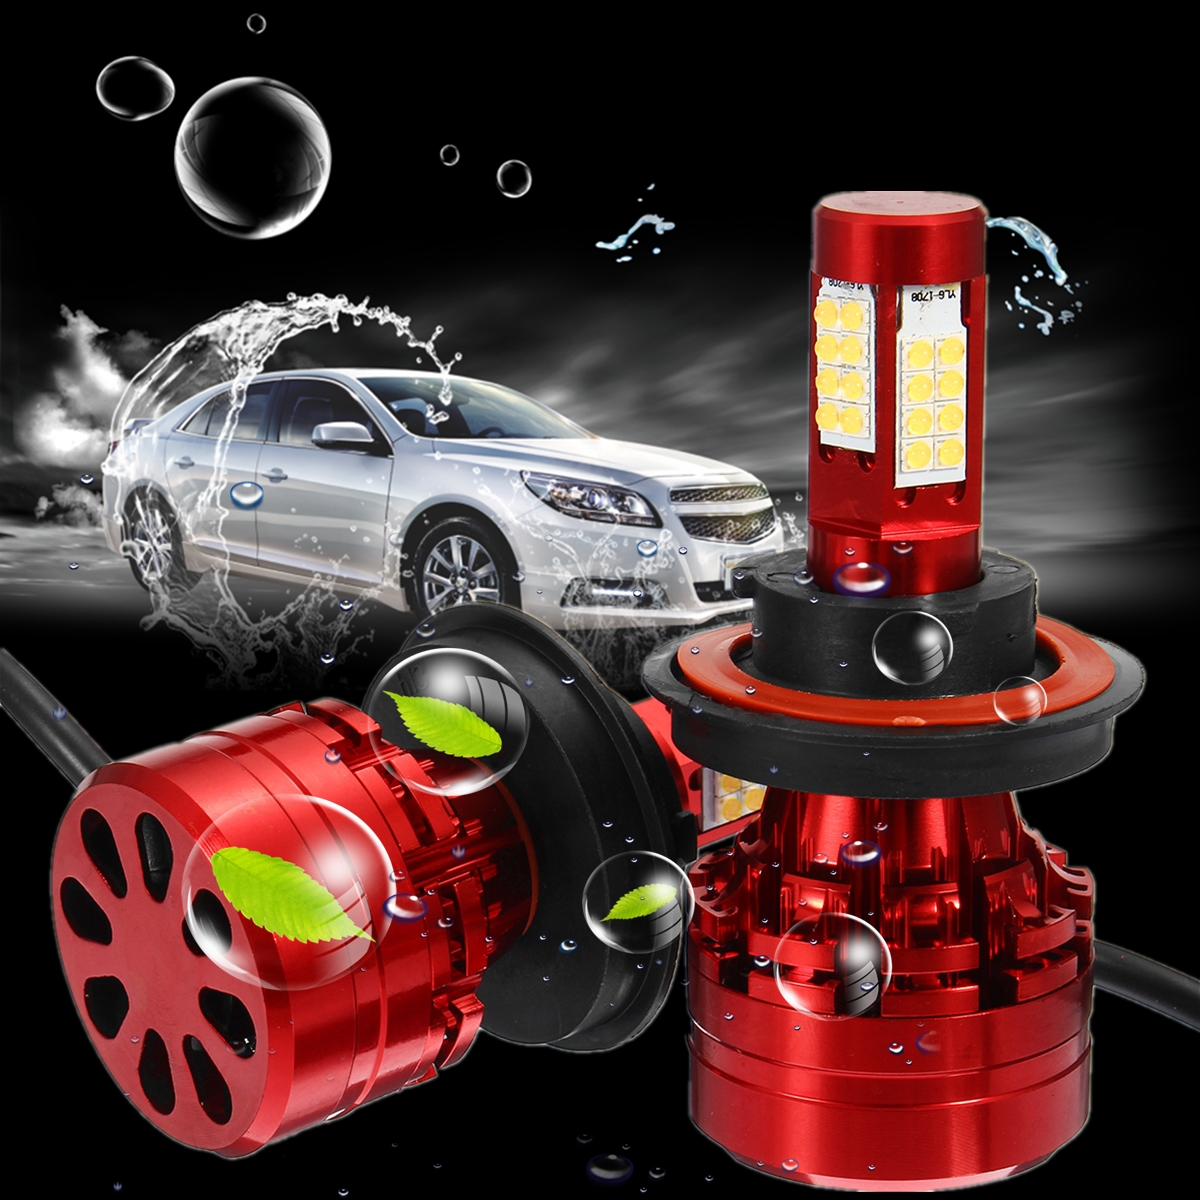 1Pair H13 80W 8000Lm 6000K Car LED Headlight Light Lamp Low Beam Bulbs High Power